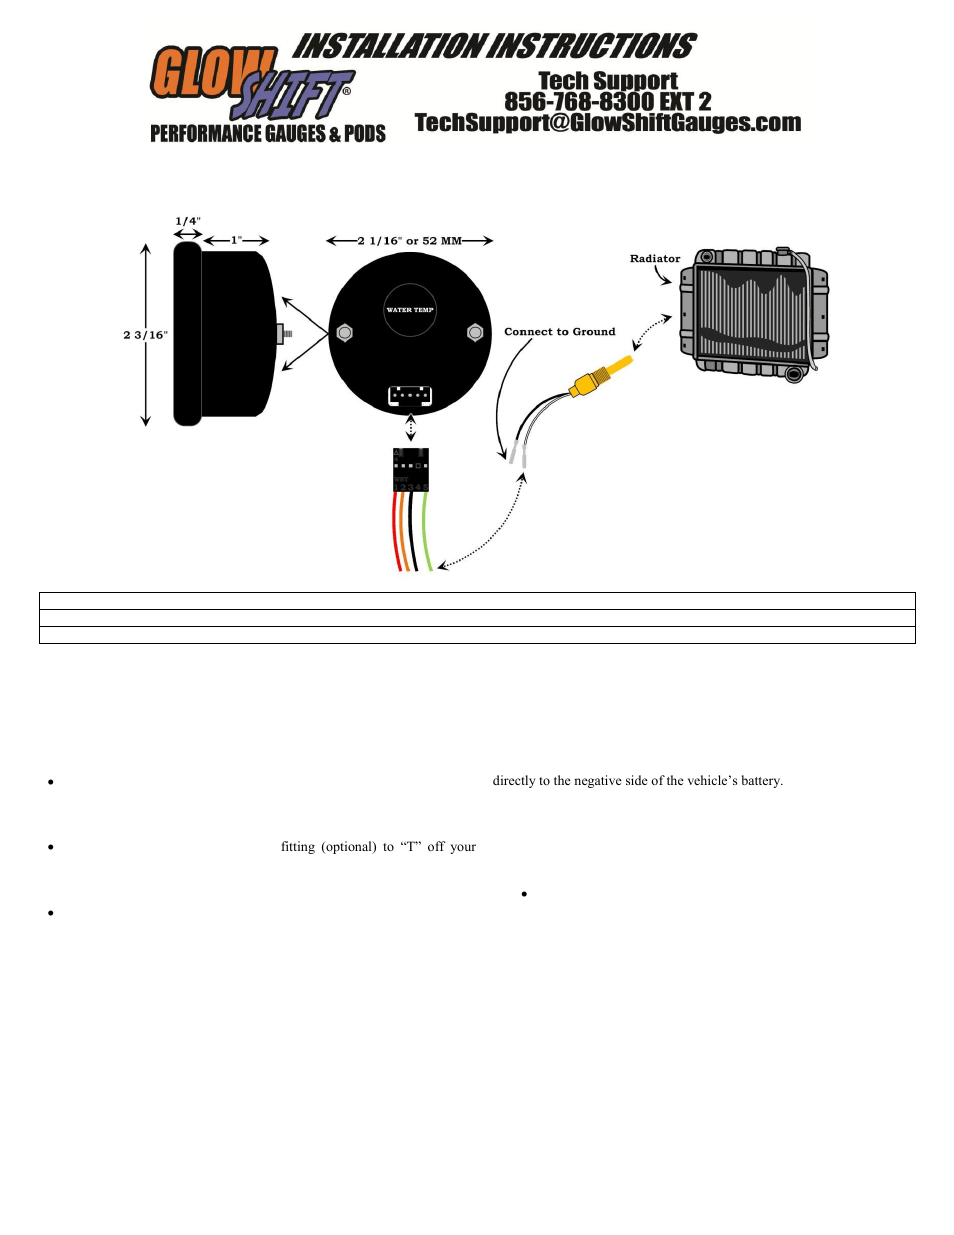 hight resolution of glowshift digital series celsius water temperature gauge user manual 3 pages also for celsius water temperature gauge